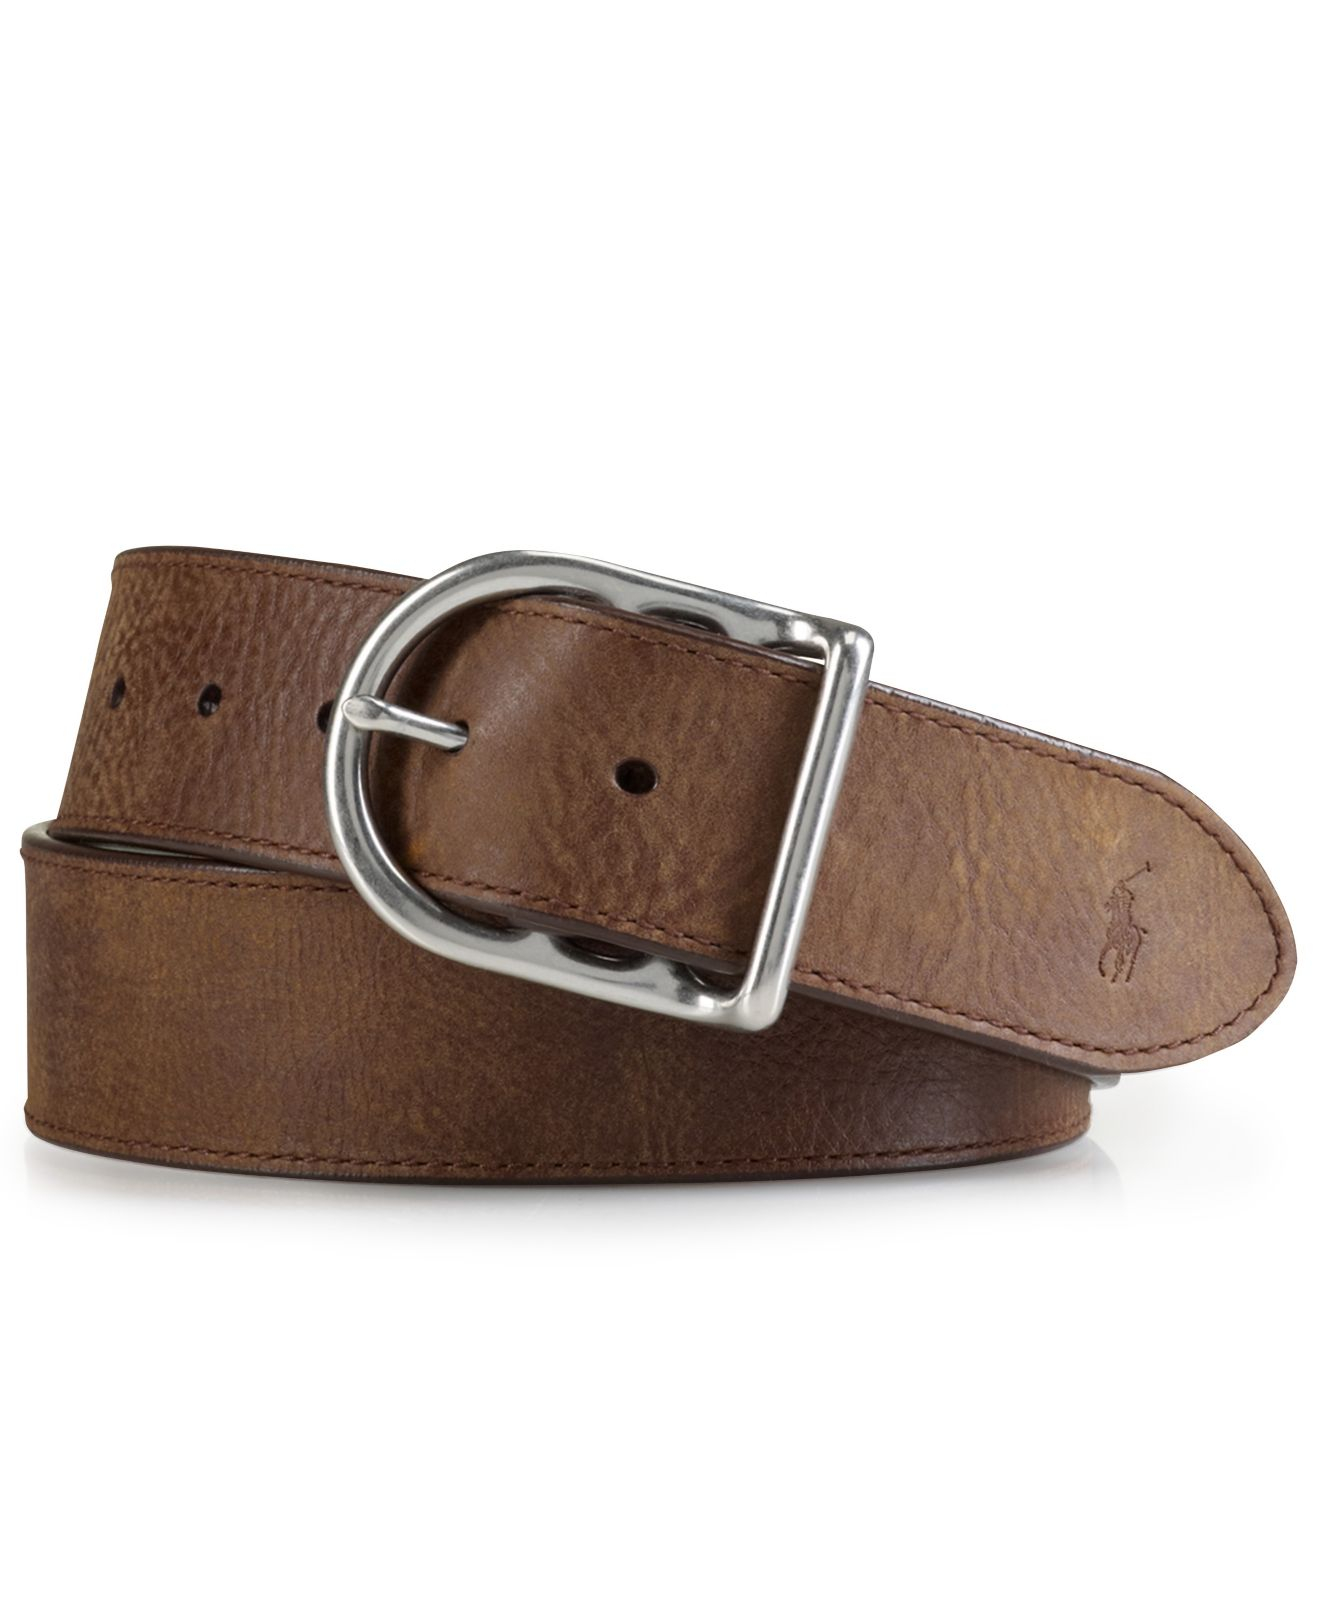 polo ralph distressed leather centerbar buckle belt